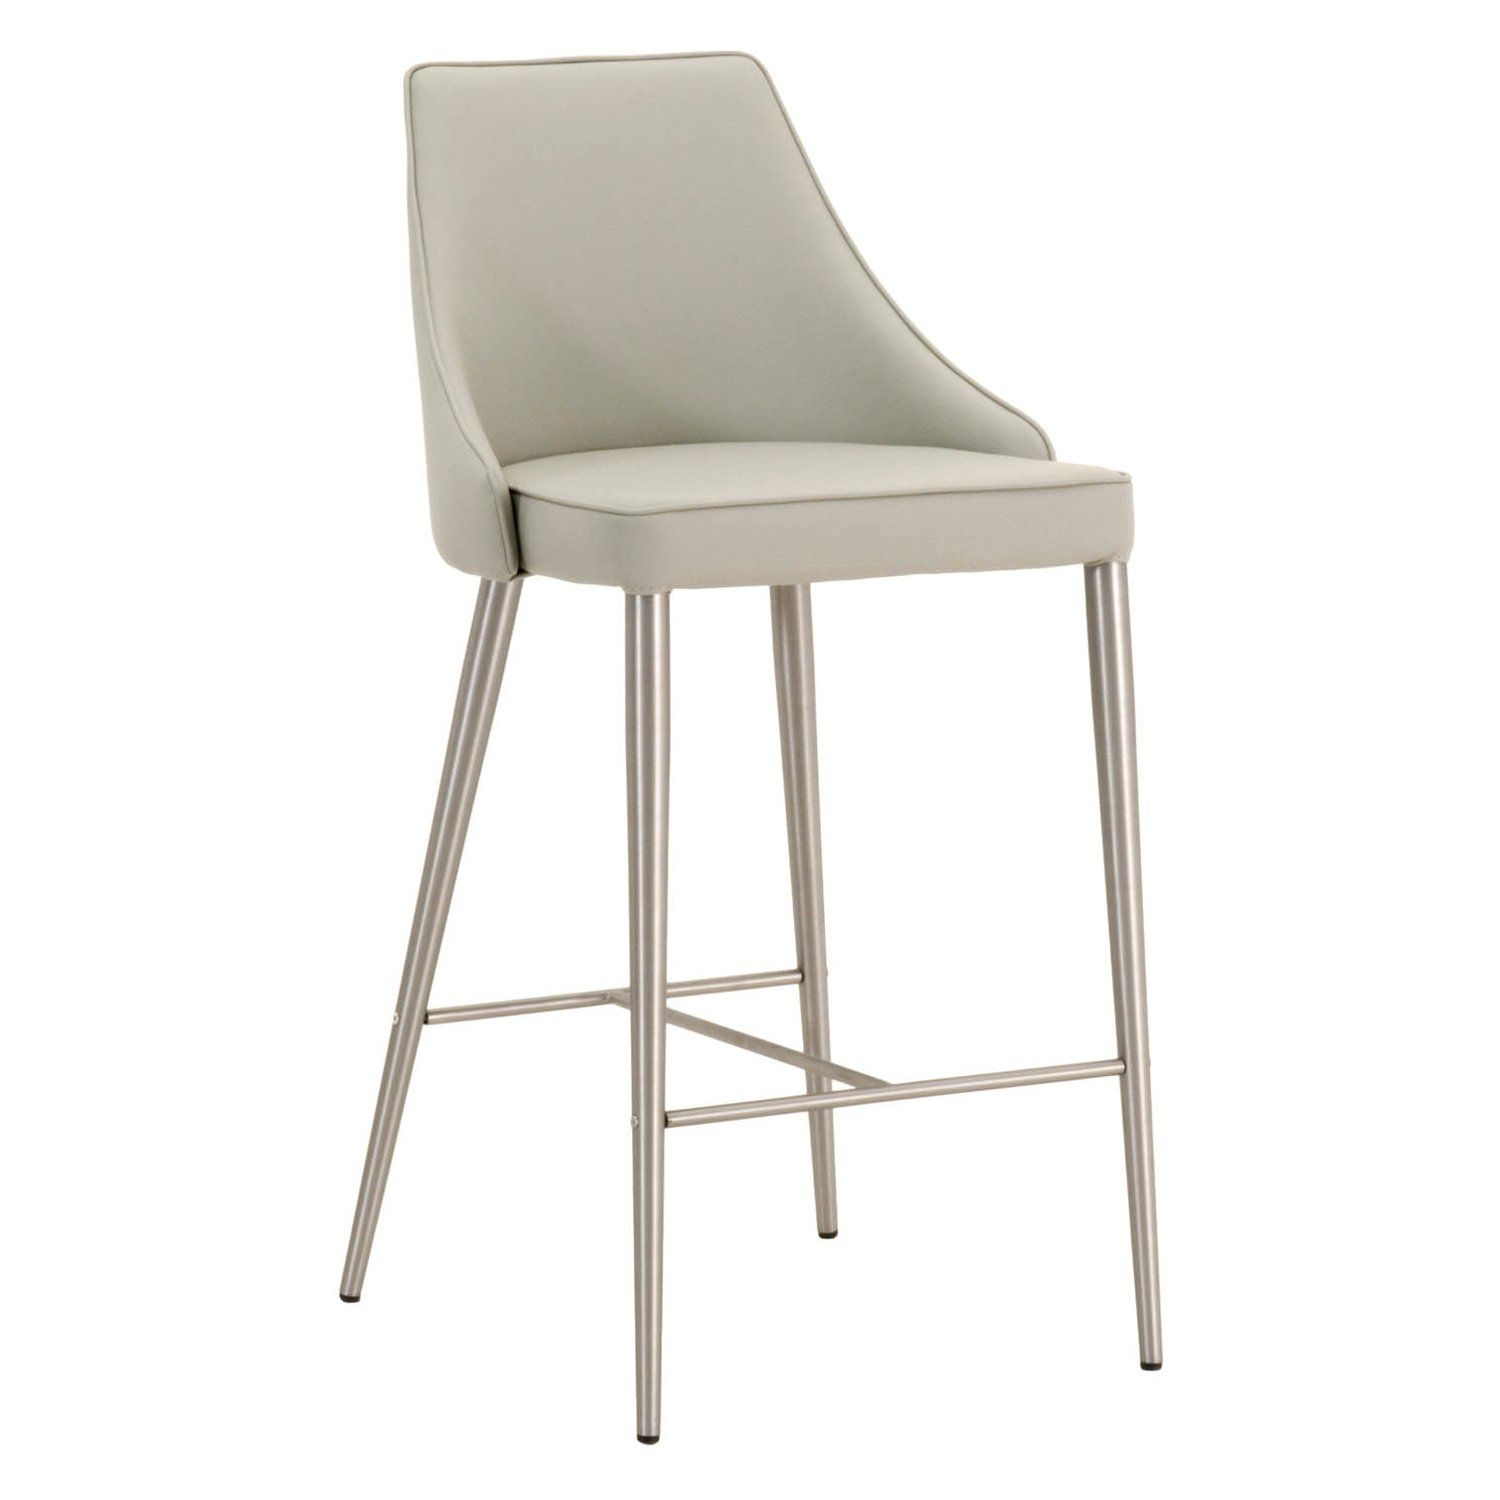 Ivy Counter Stool In 2021 Upholstered Bar Stools Steel Bar Stools Stainless Steel Bar Stools